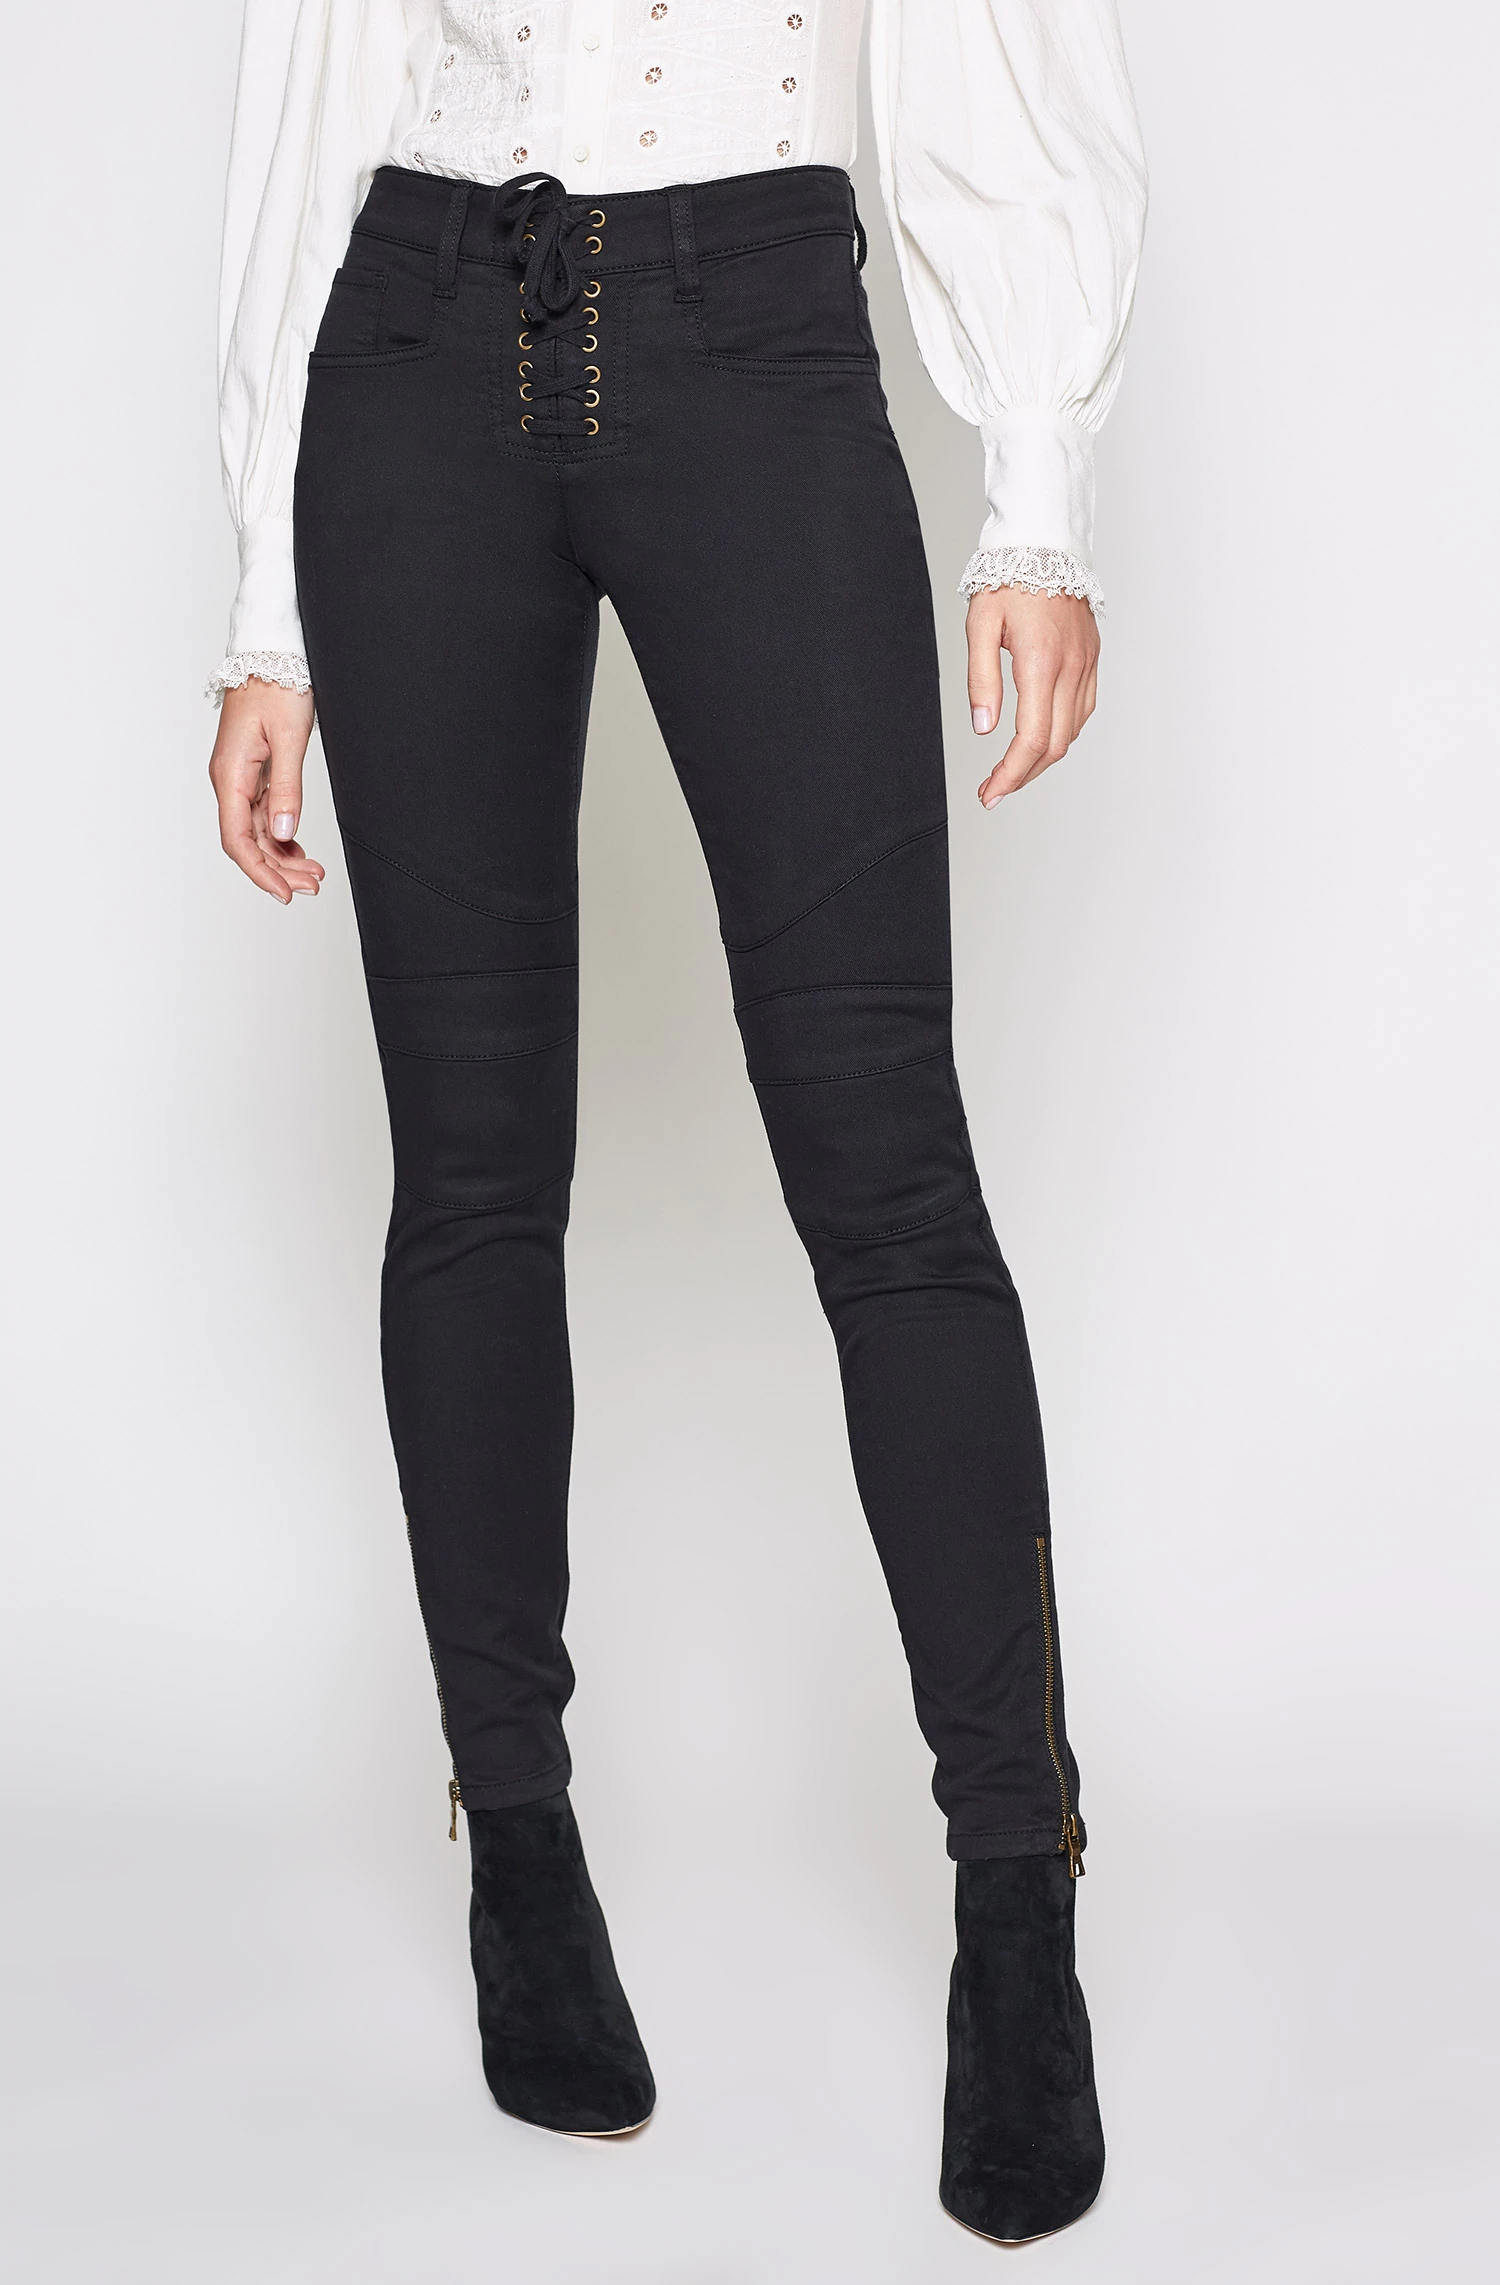 Joie Adorea Skinny Lace-Up Ankle-Zip Moto Pants In Caviar